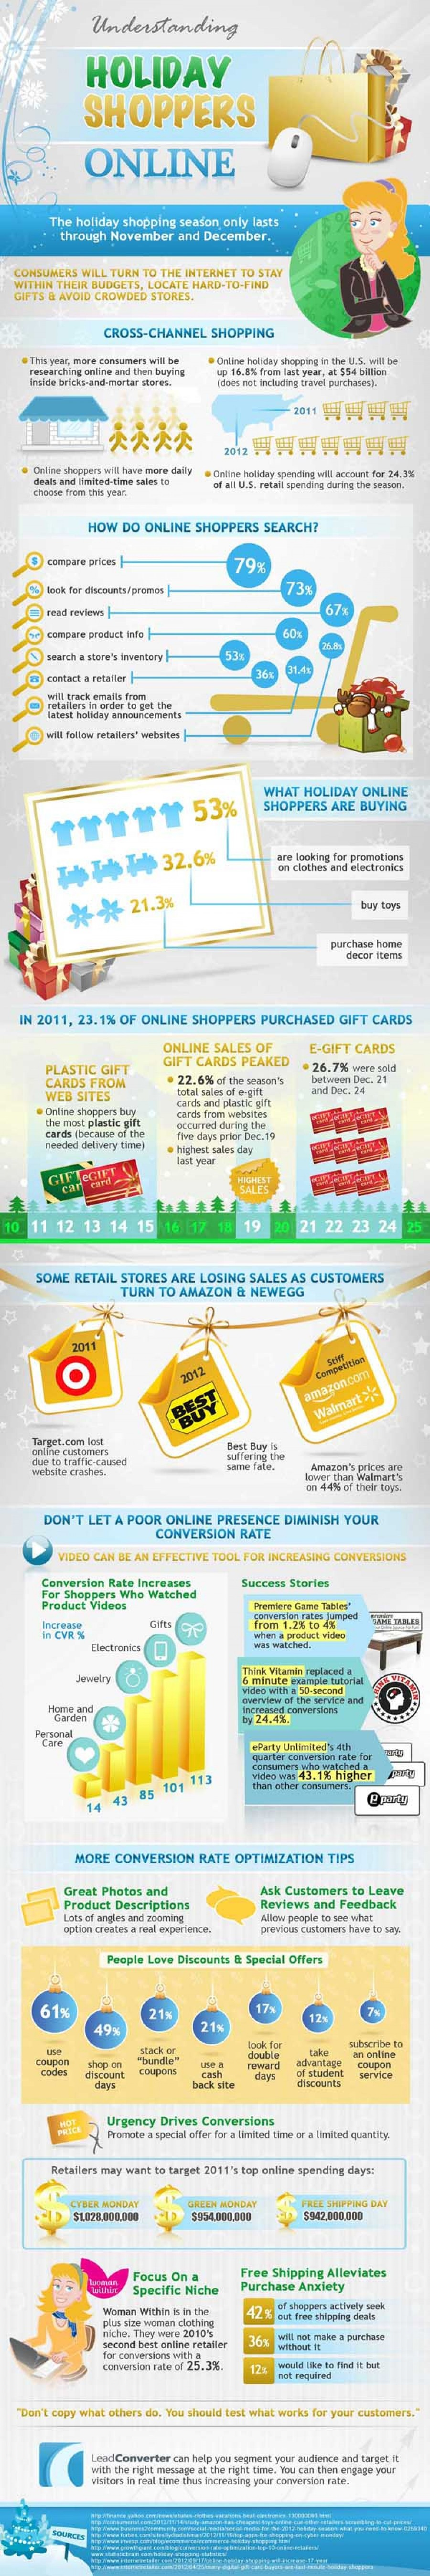 Understanding holiday shoppers online